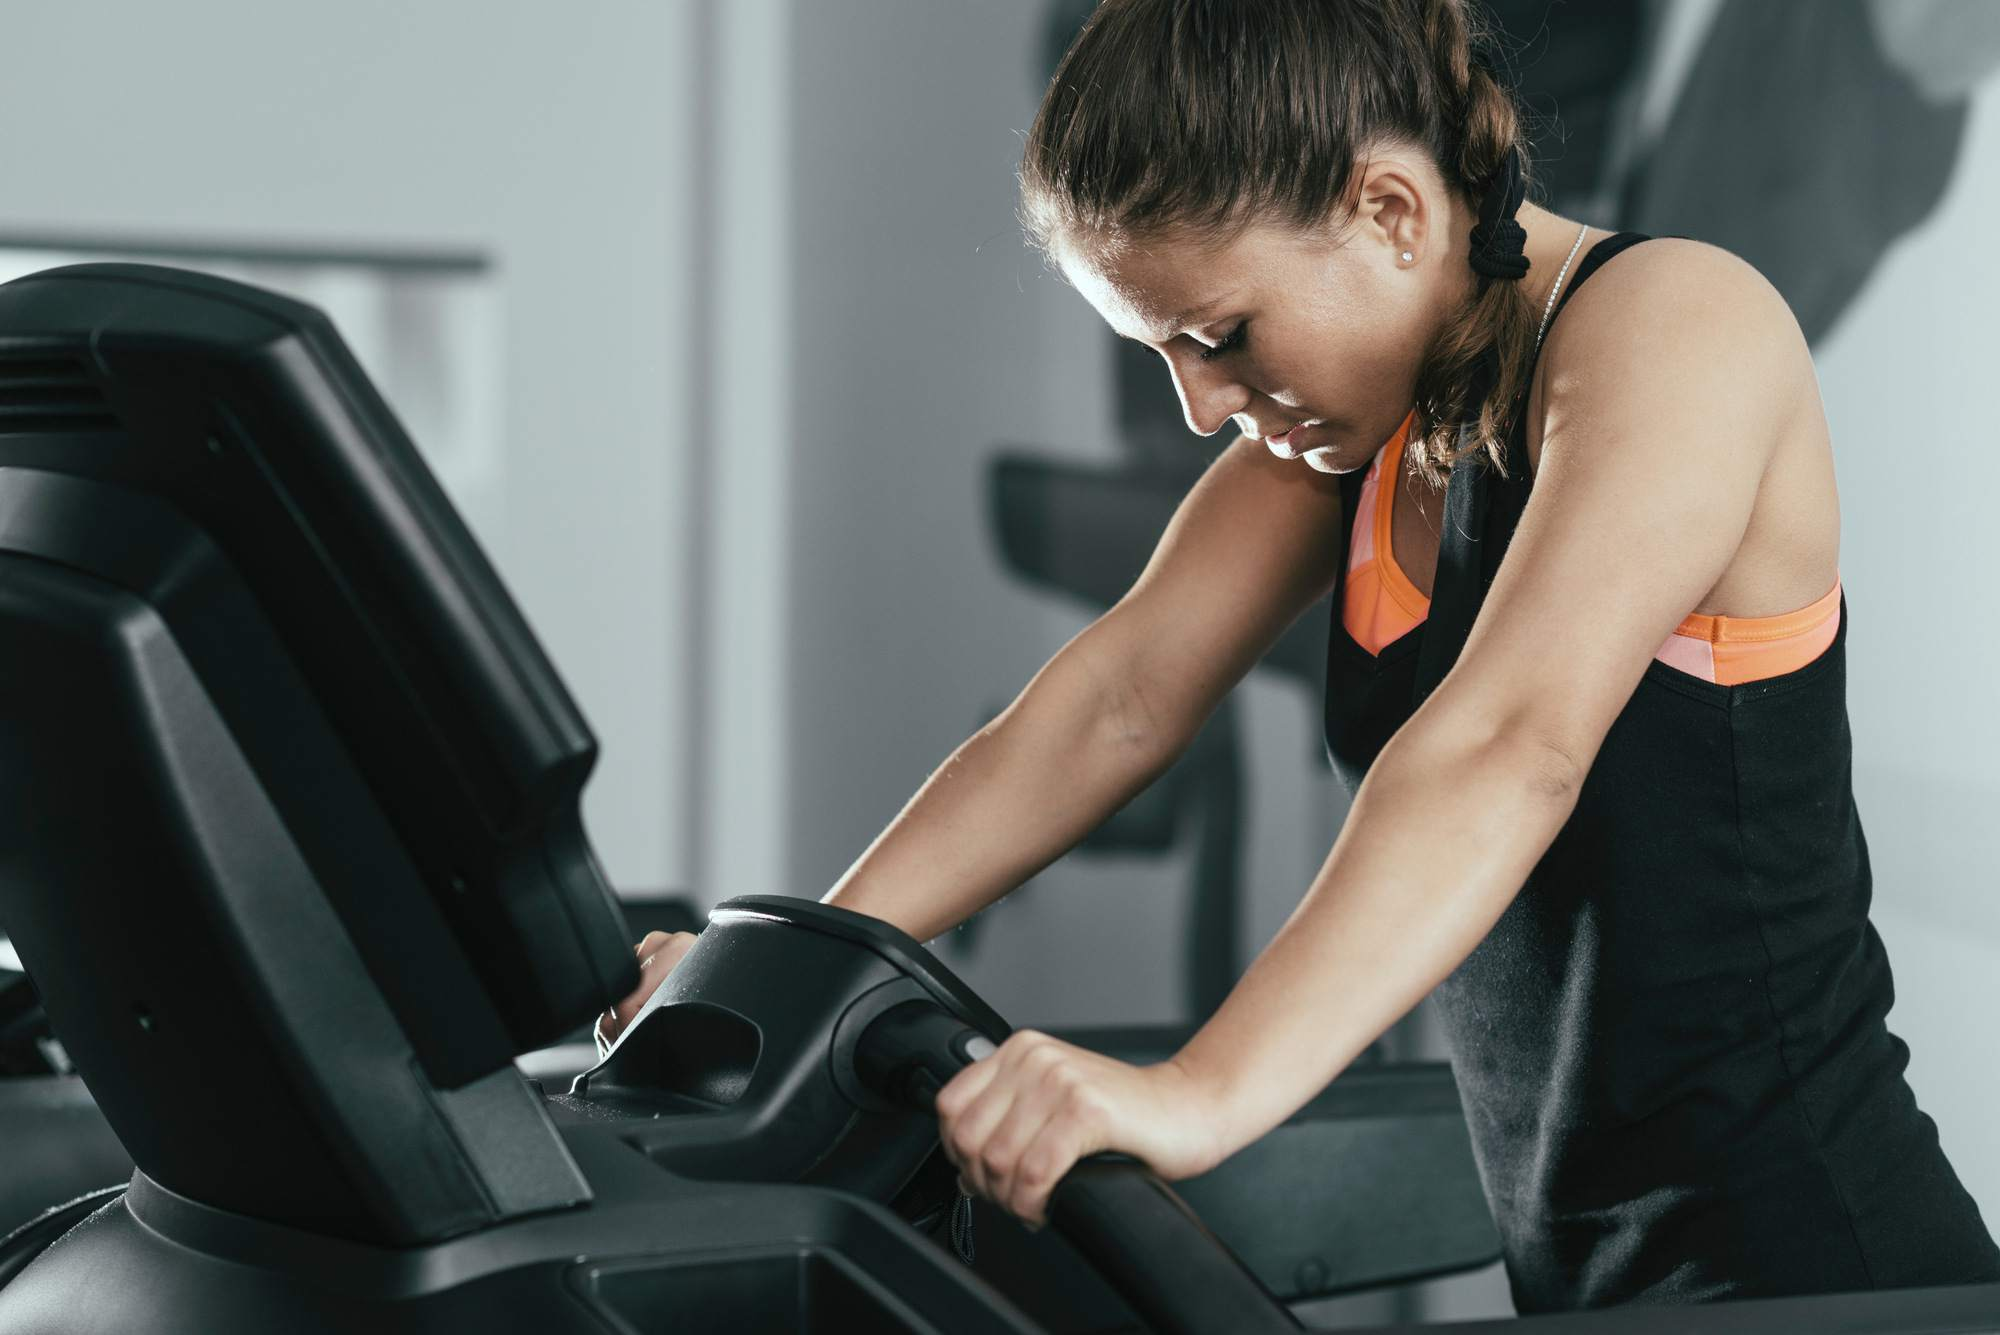 Tired Woman on a Treadmill